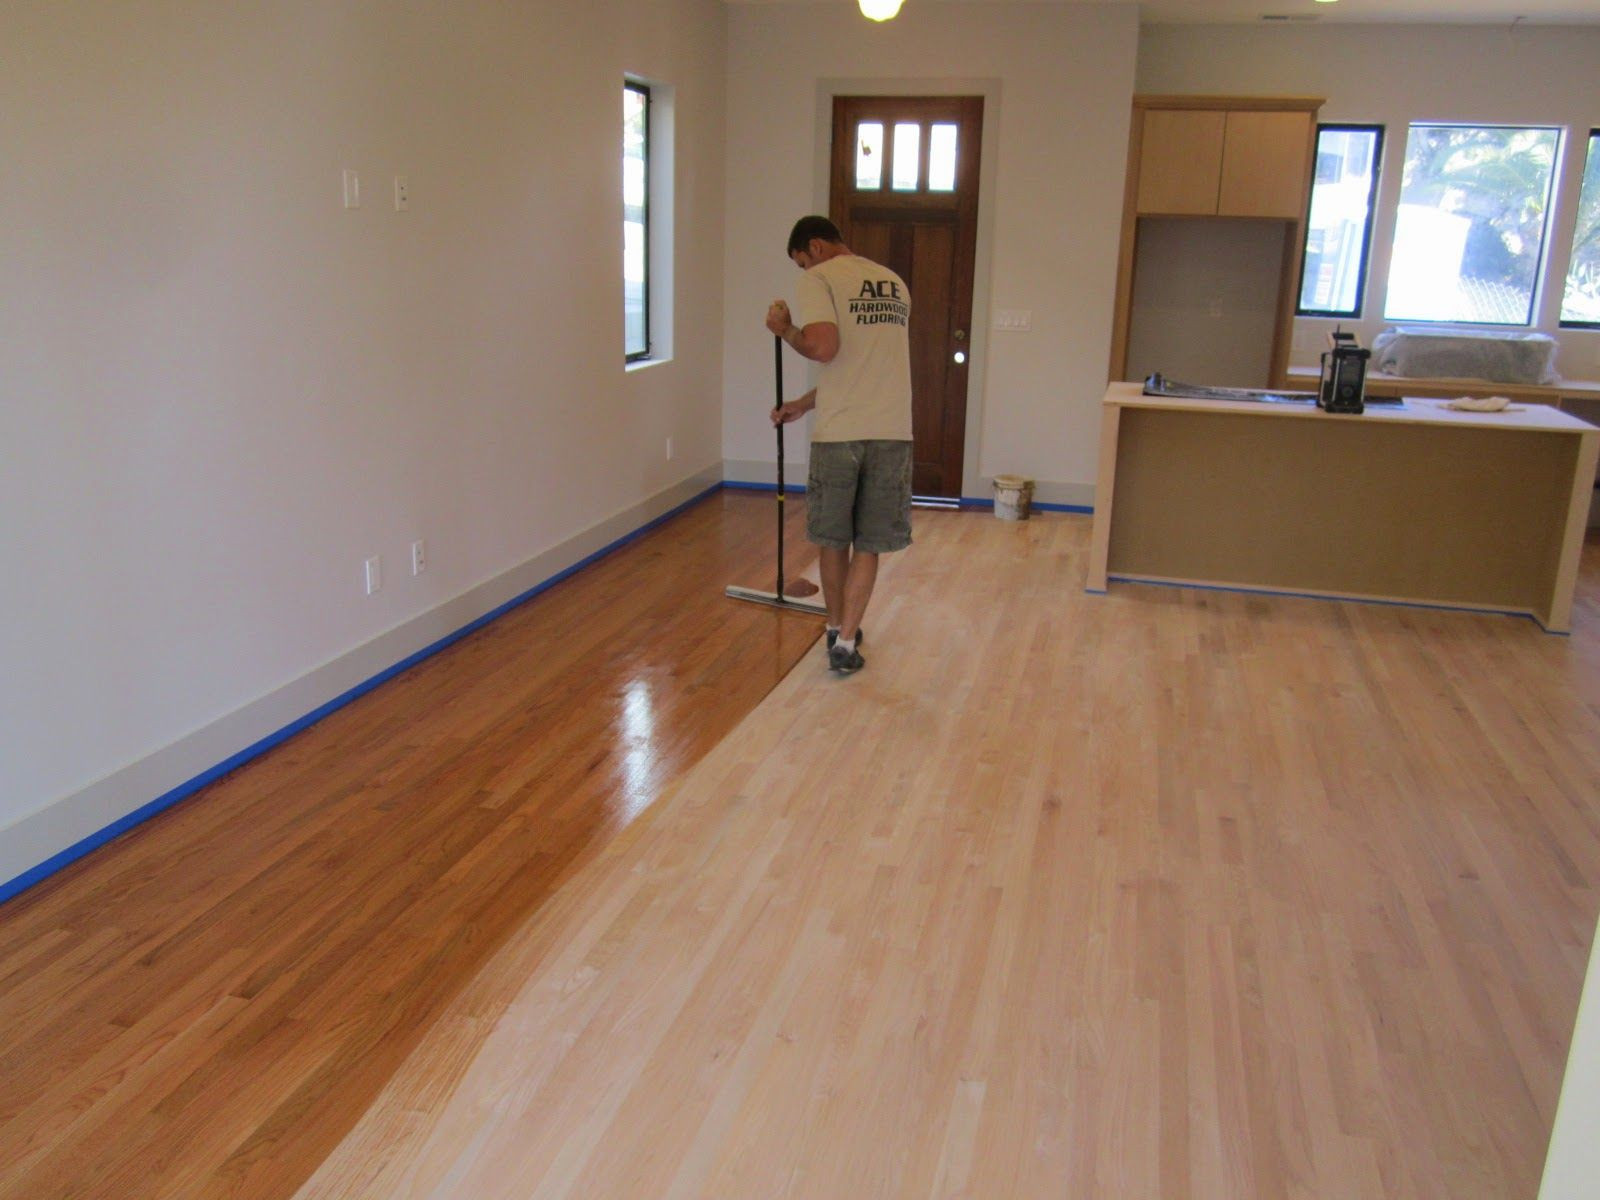 Hardwood Floor Repair and Refinishing Of Wood Floor Refinishing Hardwood Floor Repair Floor Plan Ideas Regarding Do You Have A Wooden Floor that Looks Very Dull and Drab then It is